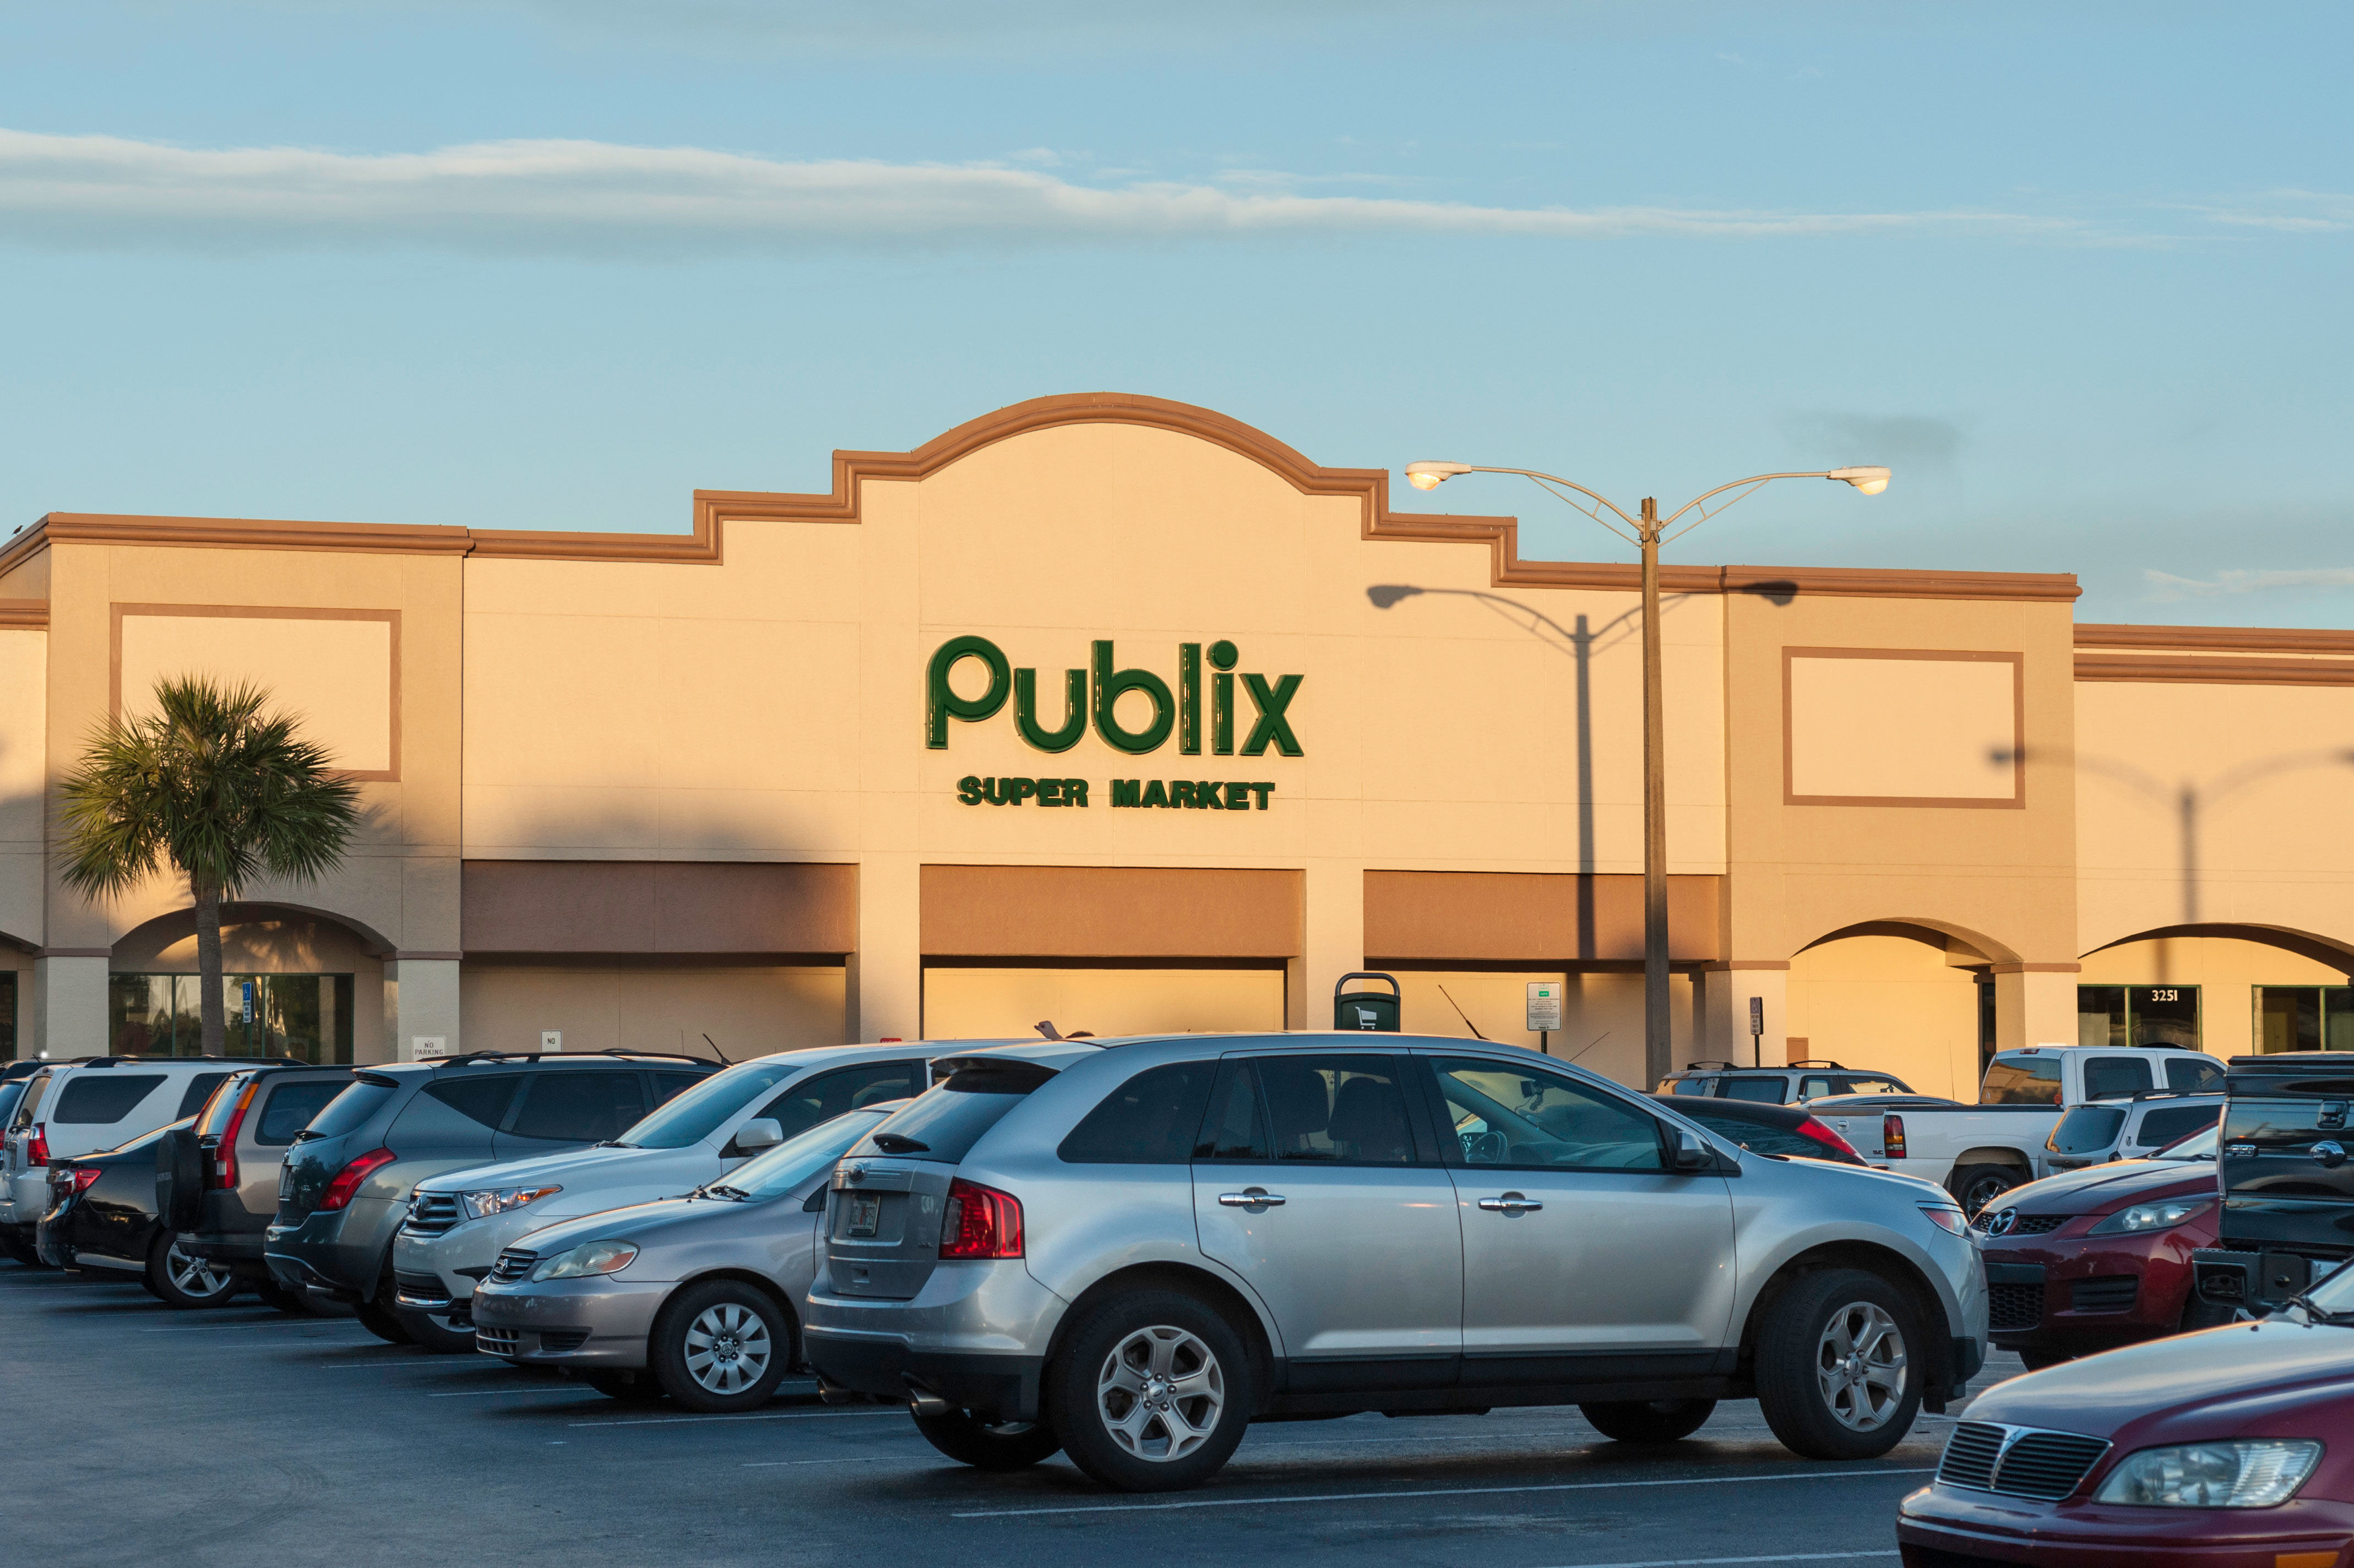 The Real Reason Why Southerners Are Obsessed with Publix